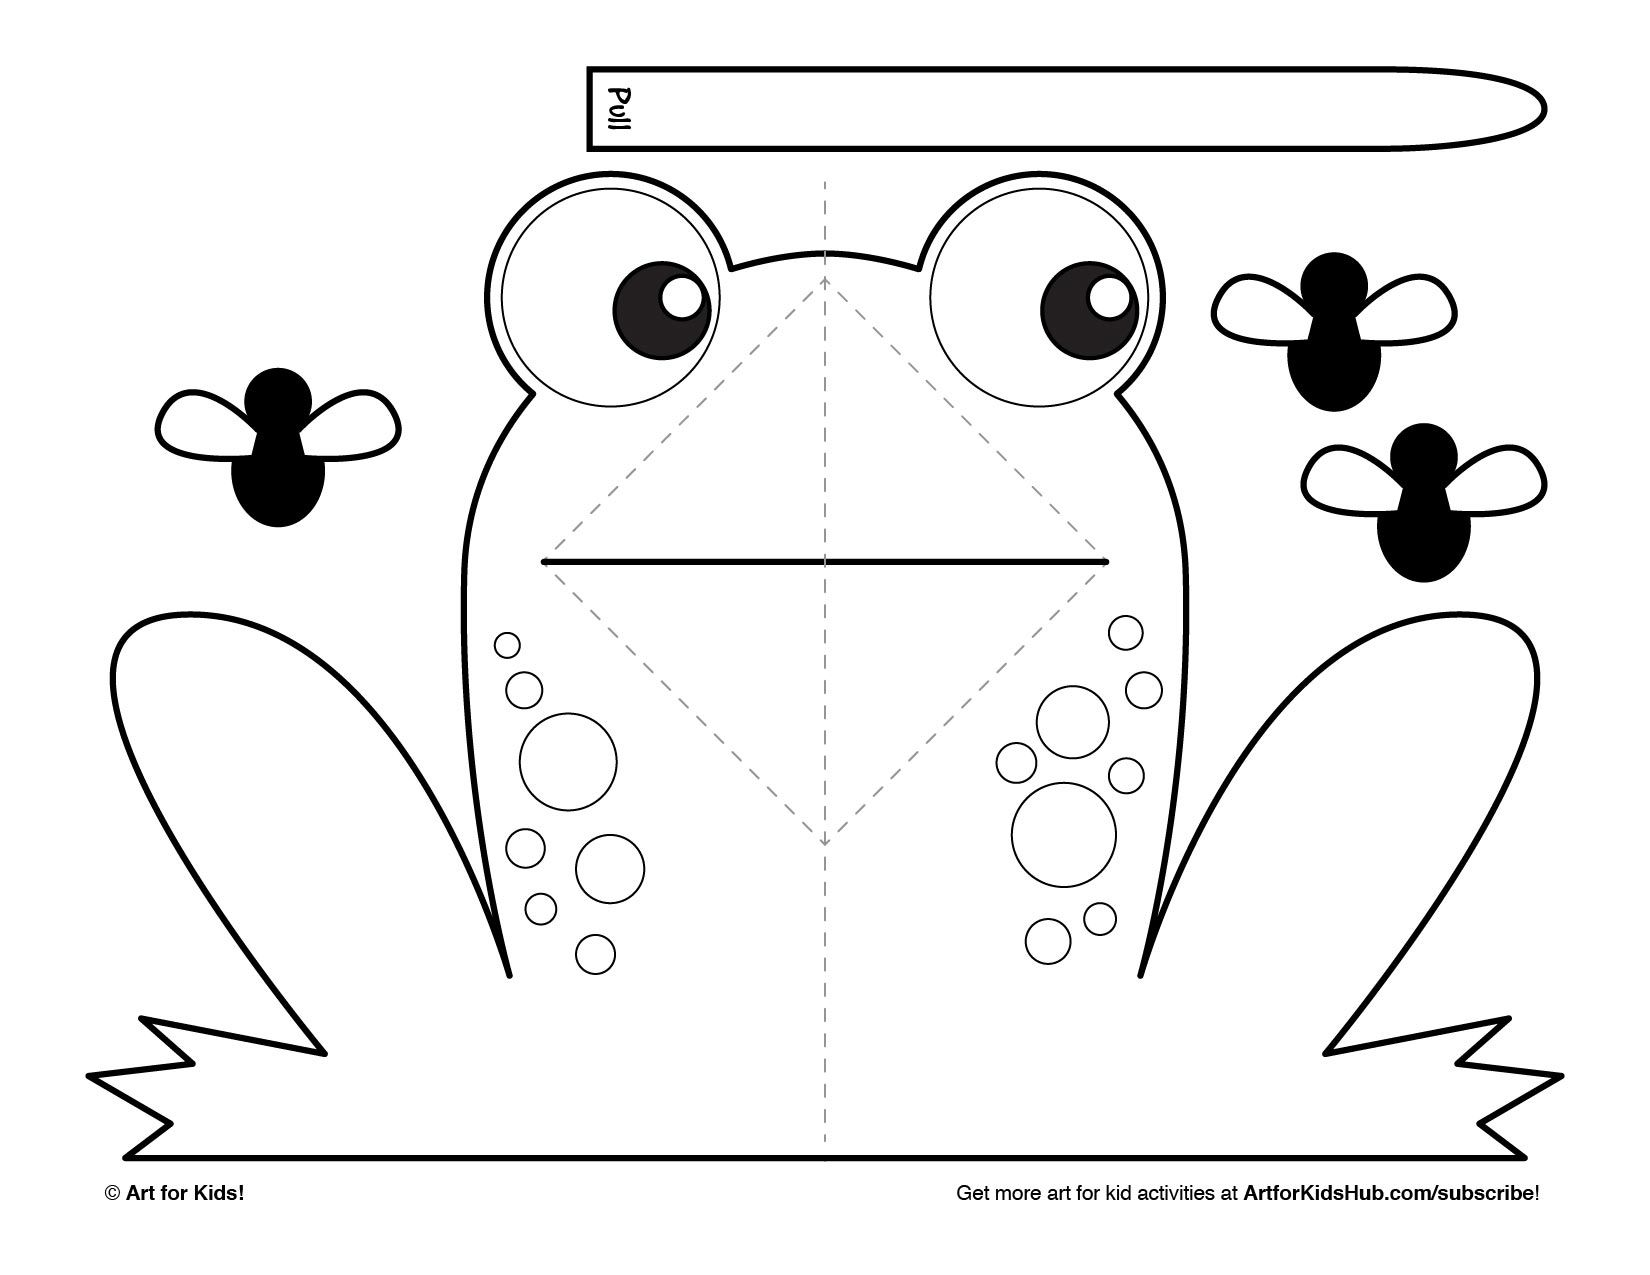 graphic relating to Printable Pop Up Cards identified as Straightforward Pop-Up Frog - Artwork For Children Hub - Frogs Artwork for children